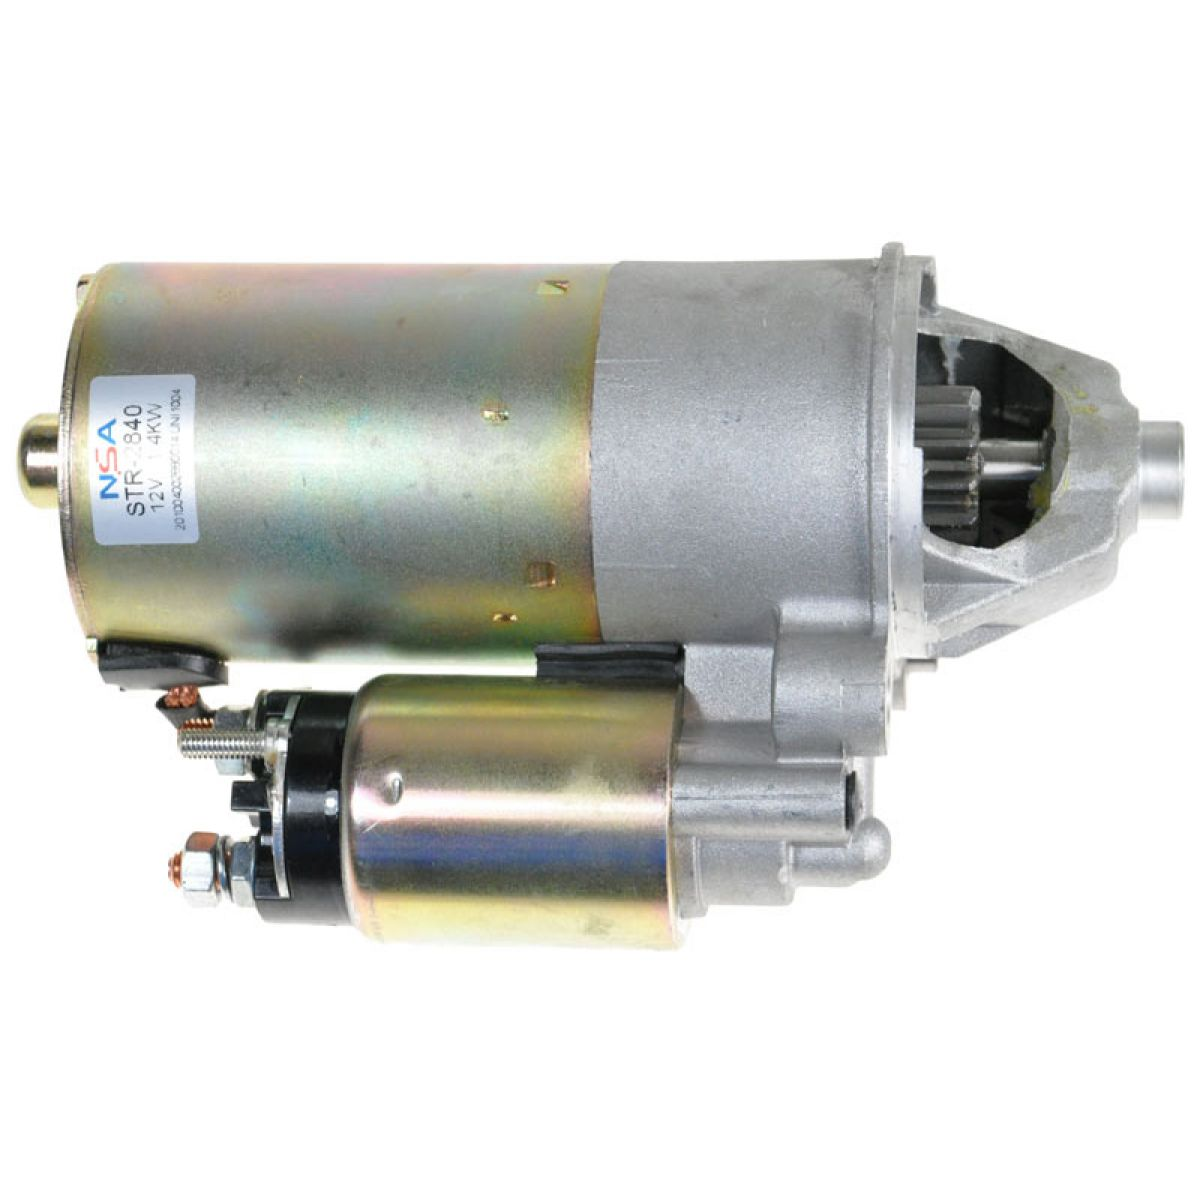 Gear Reduction Starter for 92-95 Ford Taurus 3.0L 3.2L